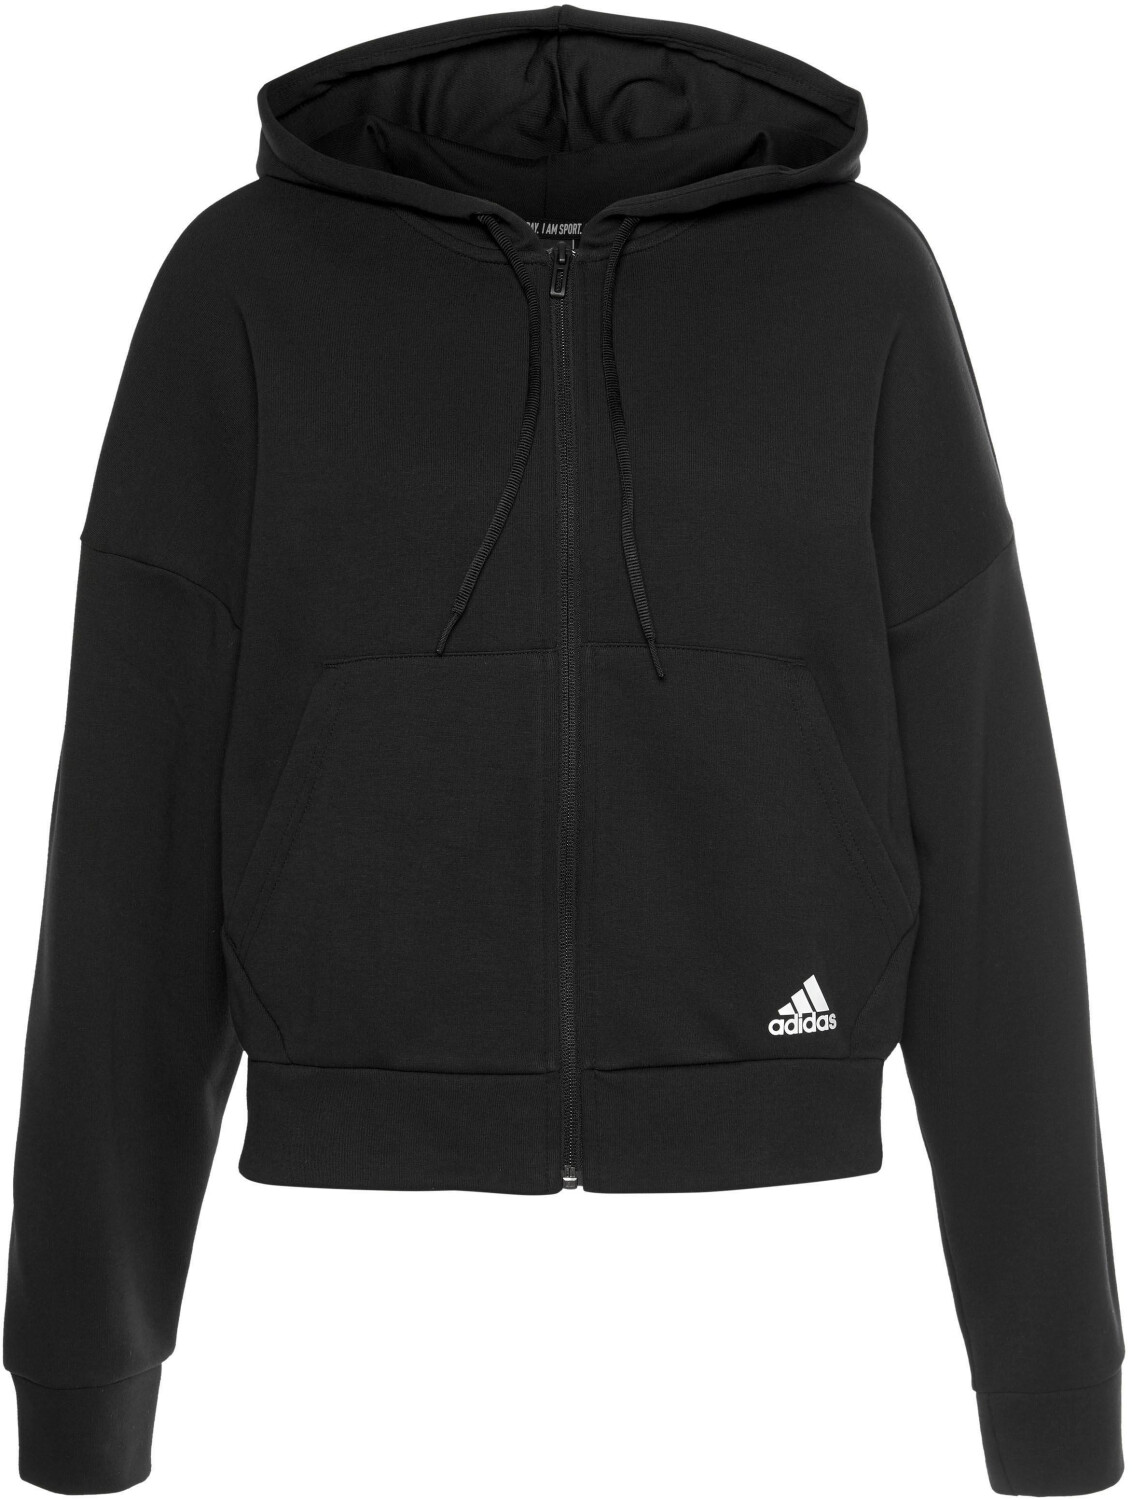 Adidas Women Athletics Must Haves 3 Stripes Hoodie ab € 32